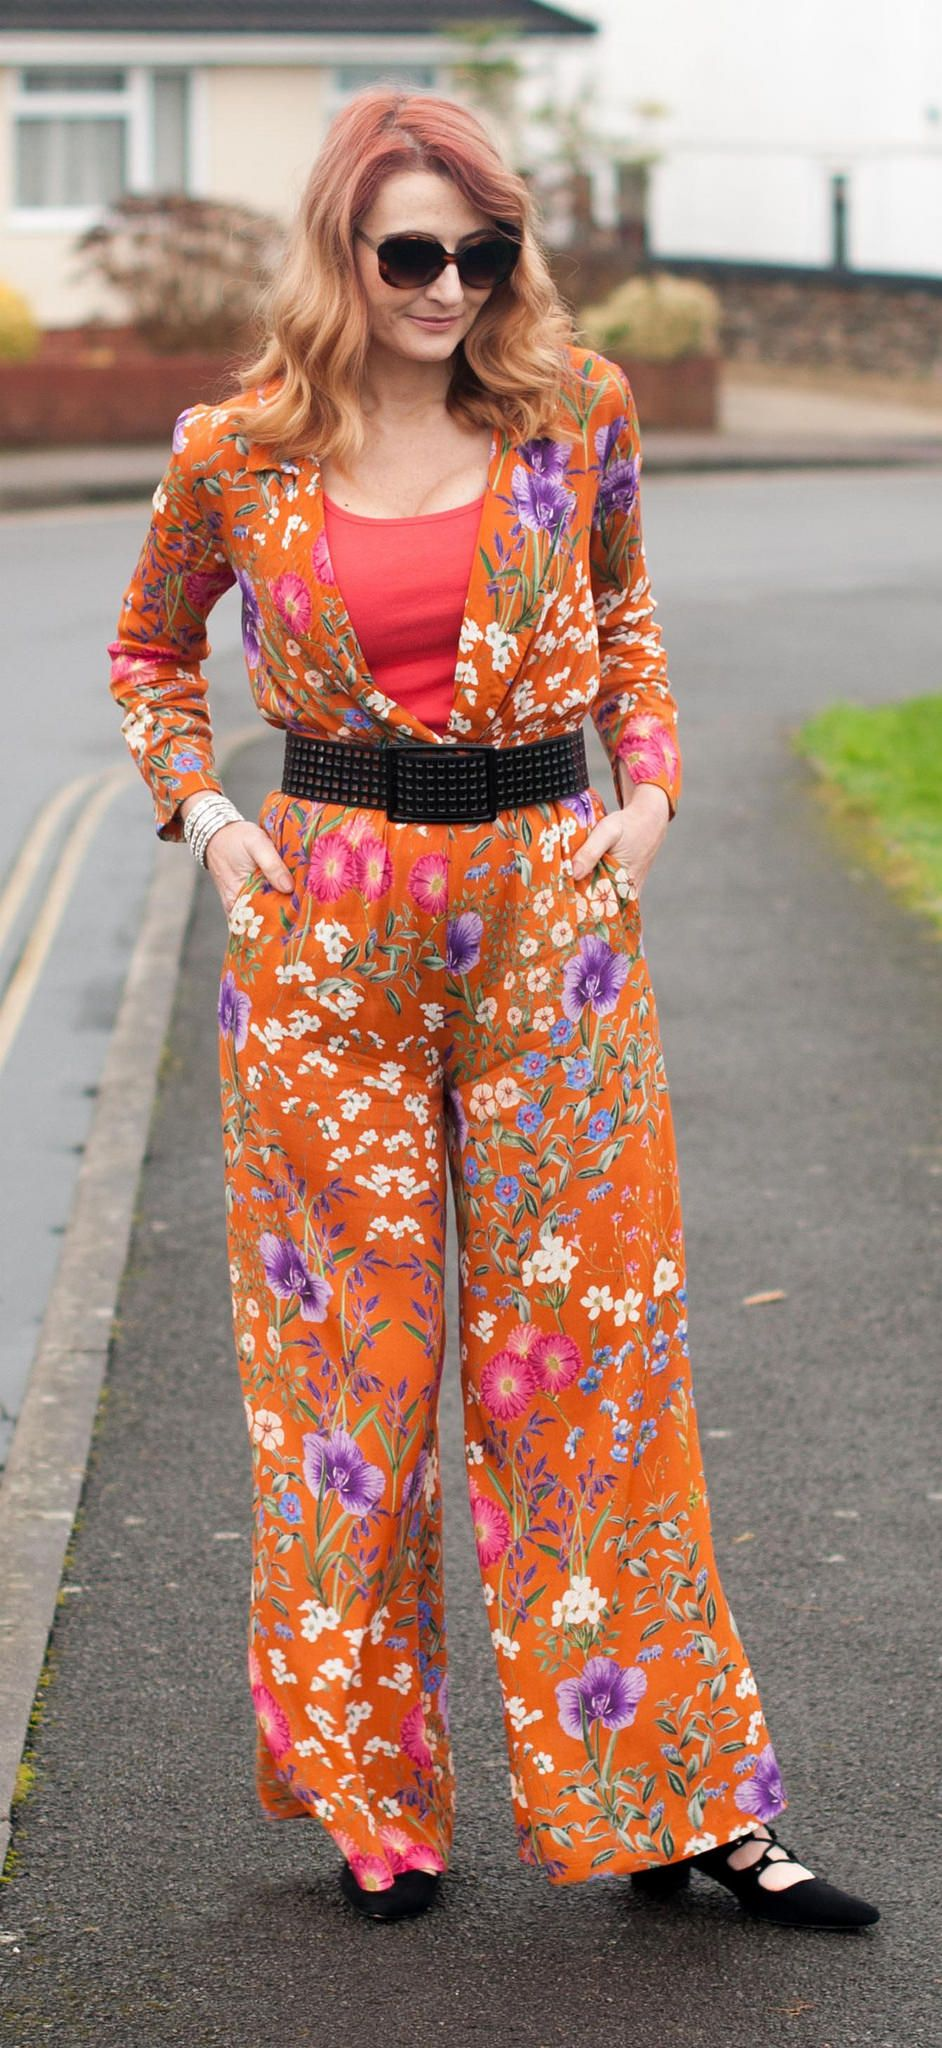 bc7ae319ac Wearing Florals in Winter  Wide leg orange floral jumpsuit from Mango with  black accessories